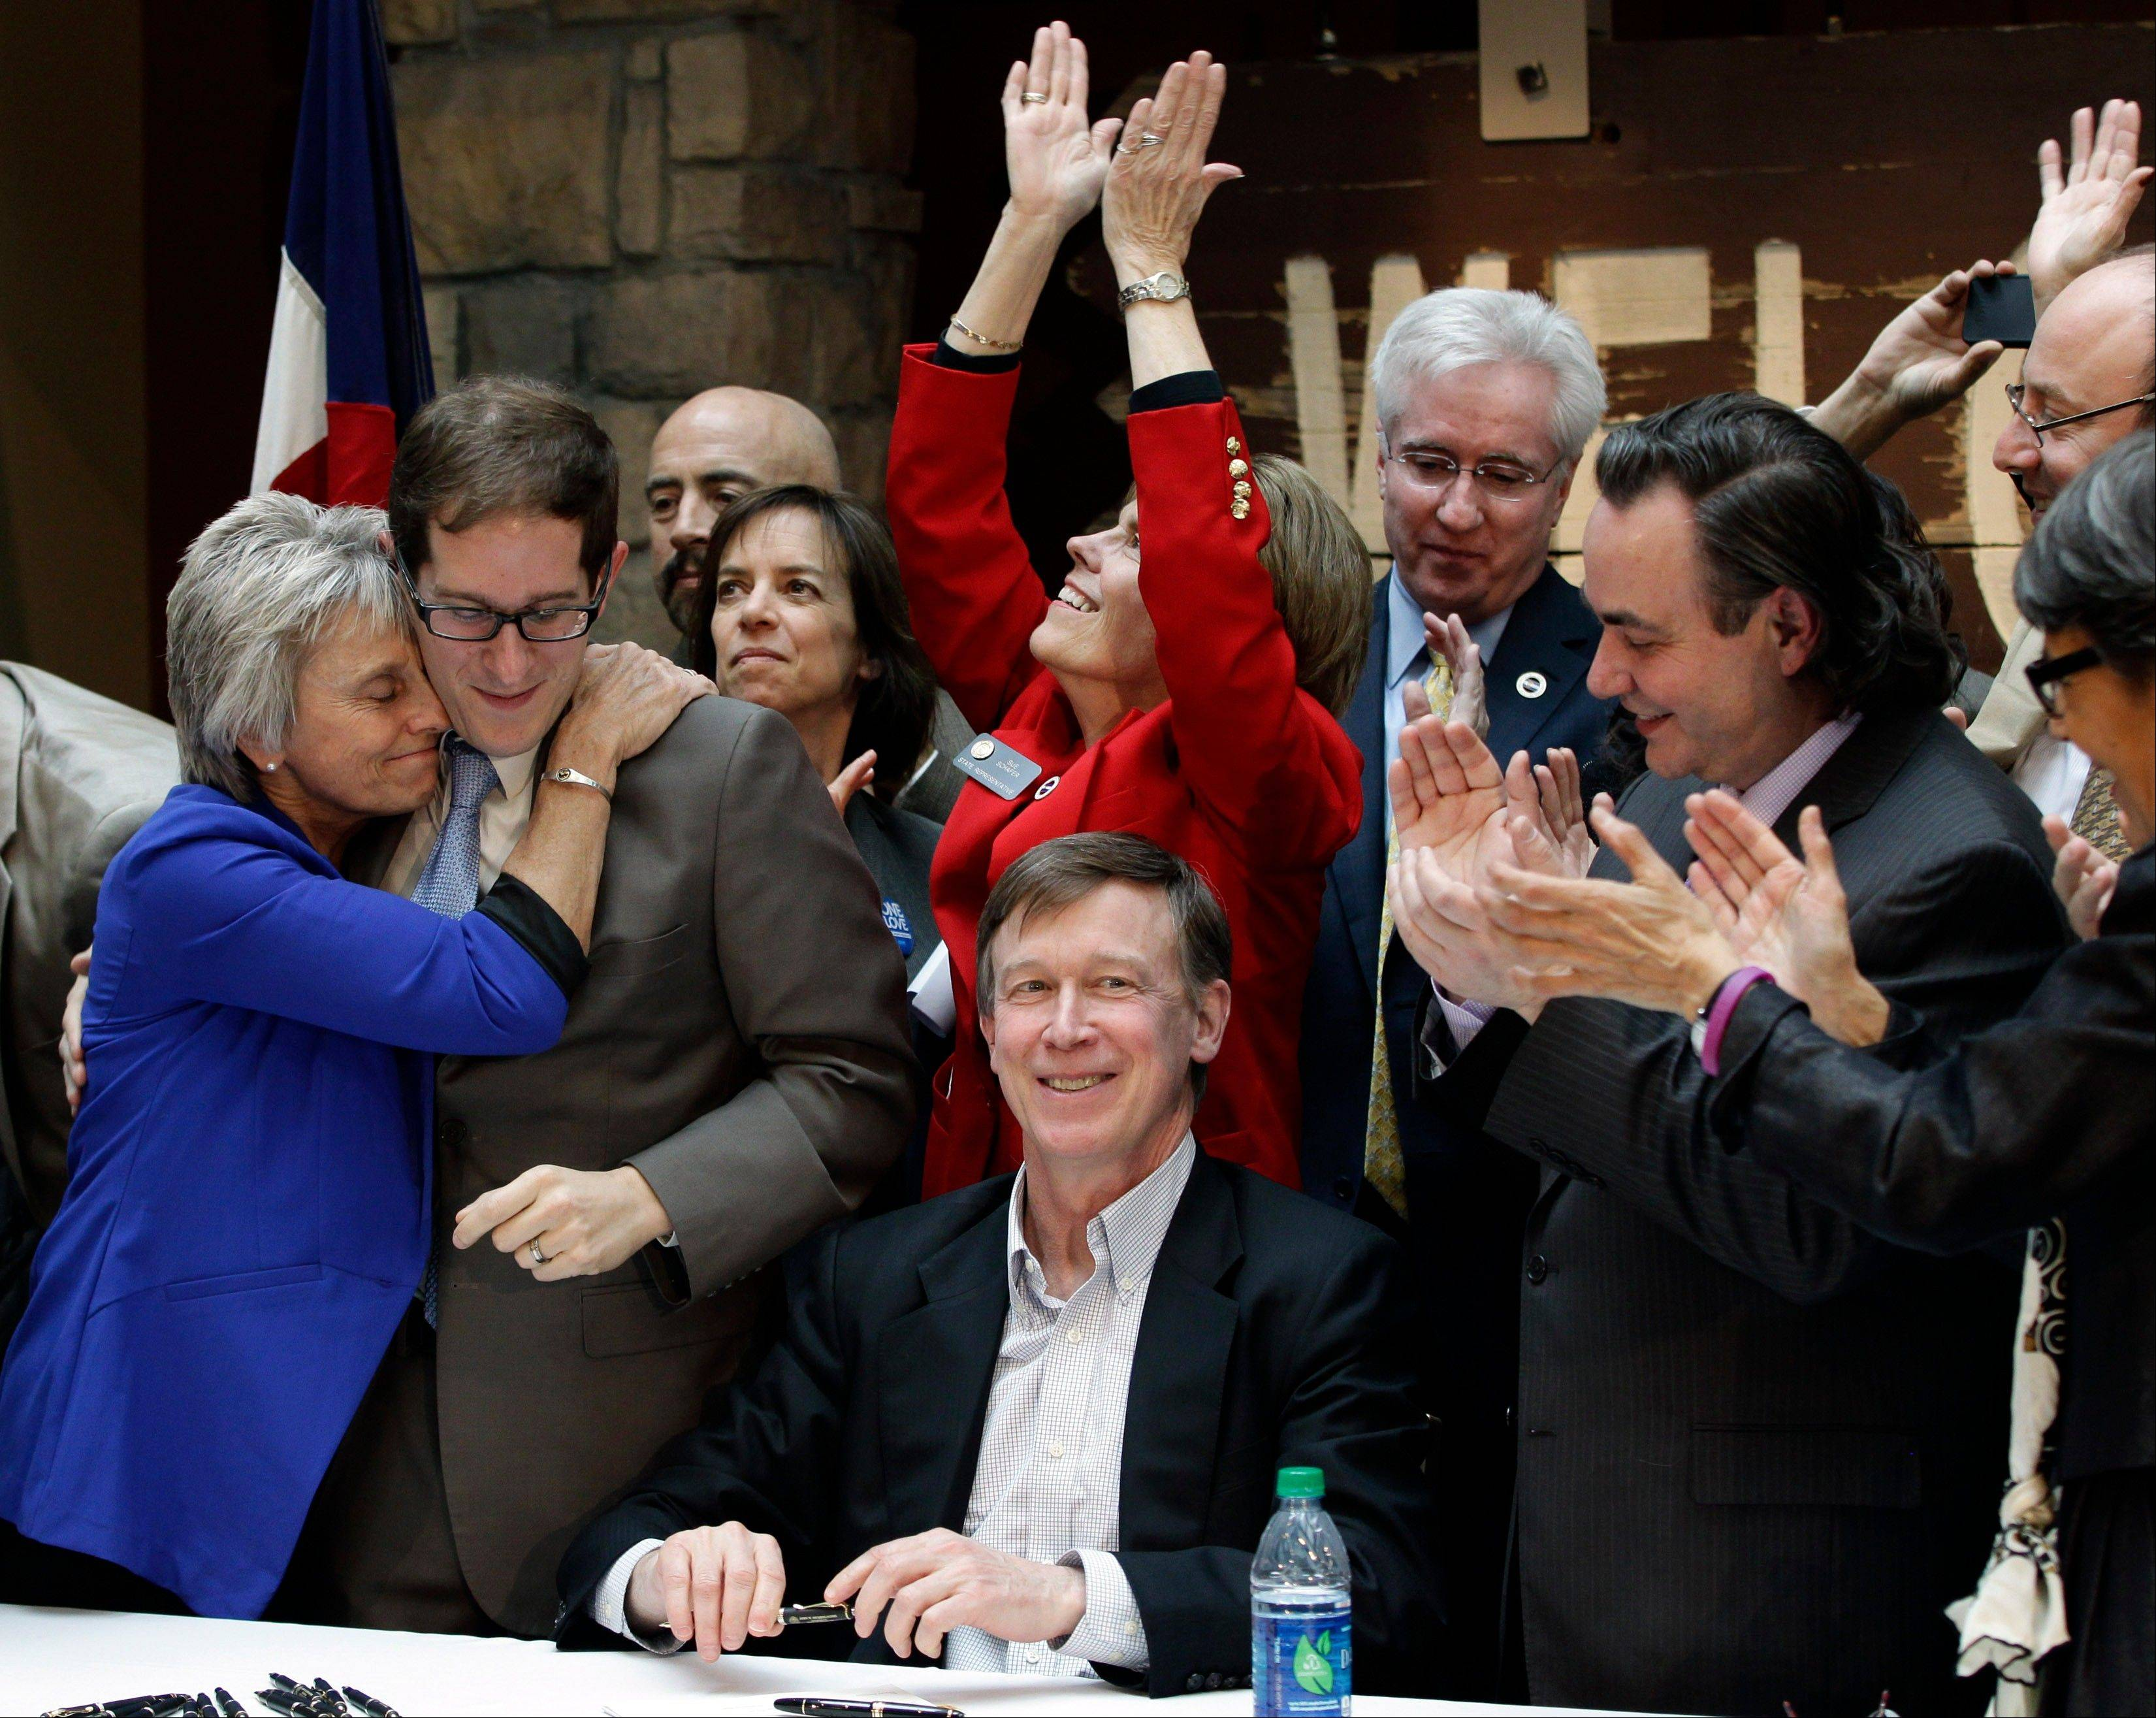 Rep. Joann Ginal, left, hugs Rep. Mark Ferrandino, as others applaud after Colorado Gov. John Hickenlooper, seated center, signed the Civil Unions Act into law Friday at the Colorado History Museum in Denver, Colo.